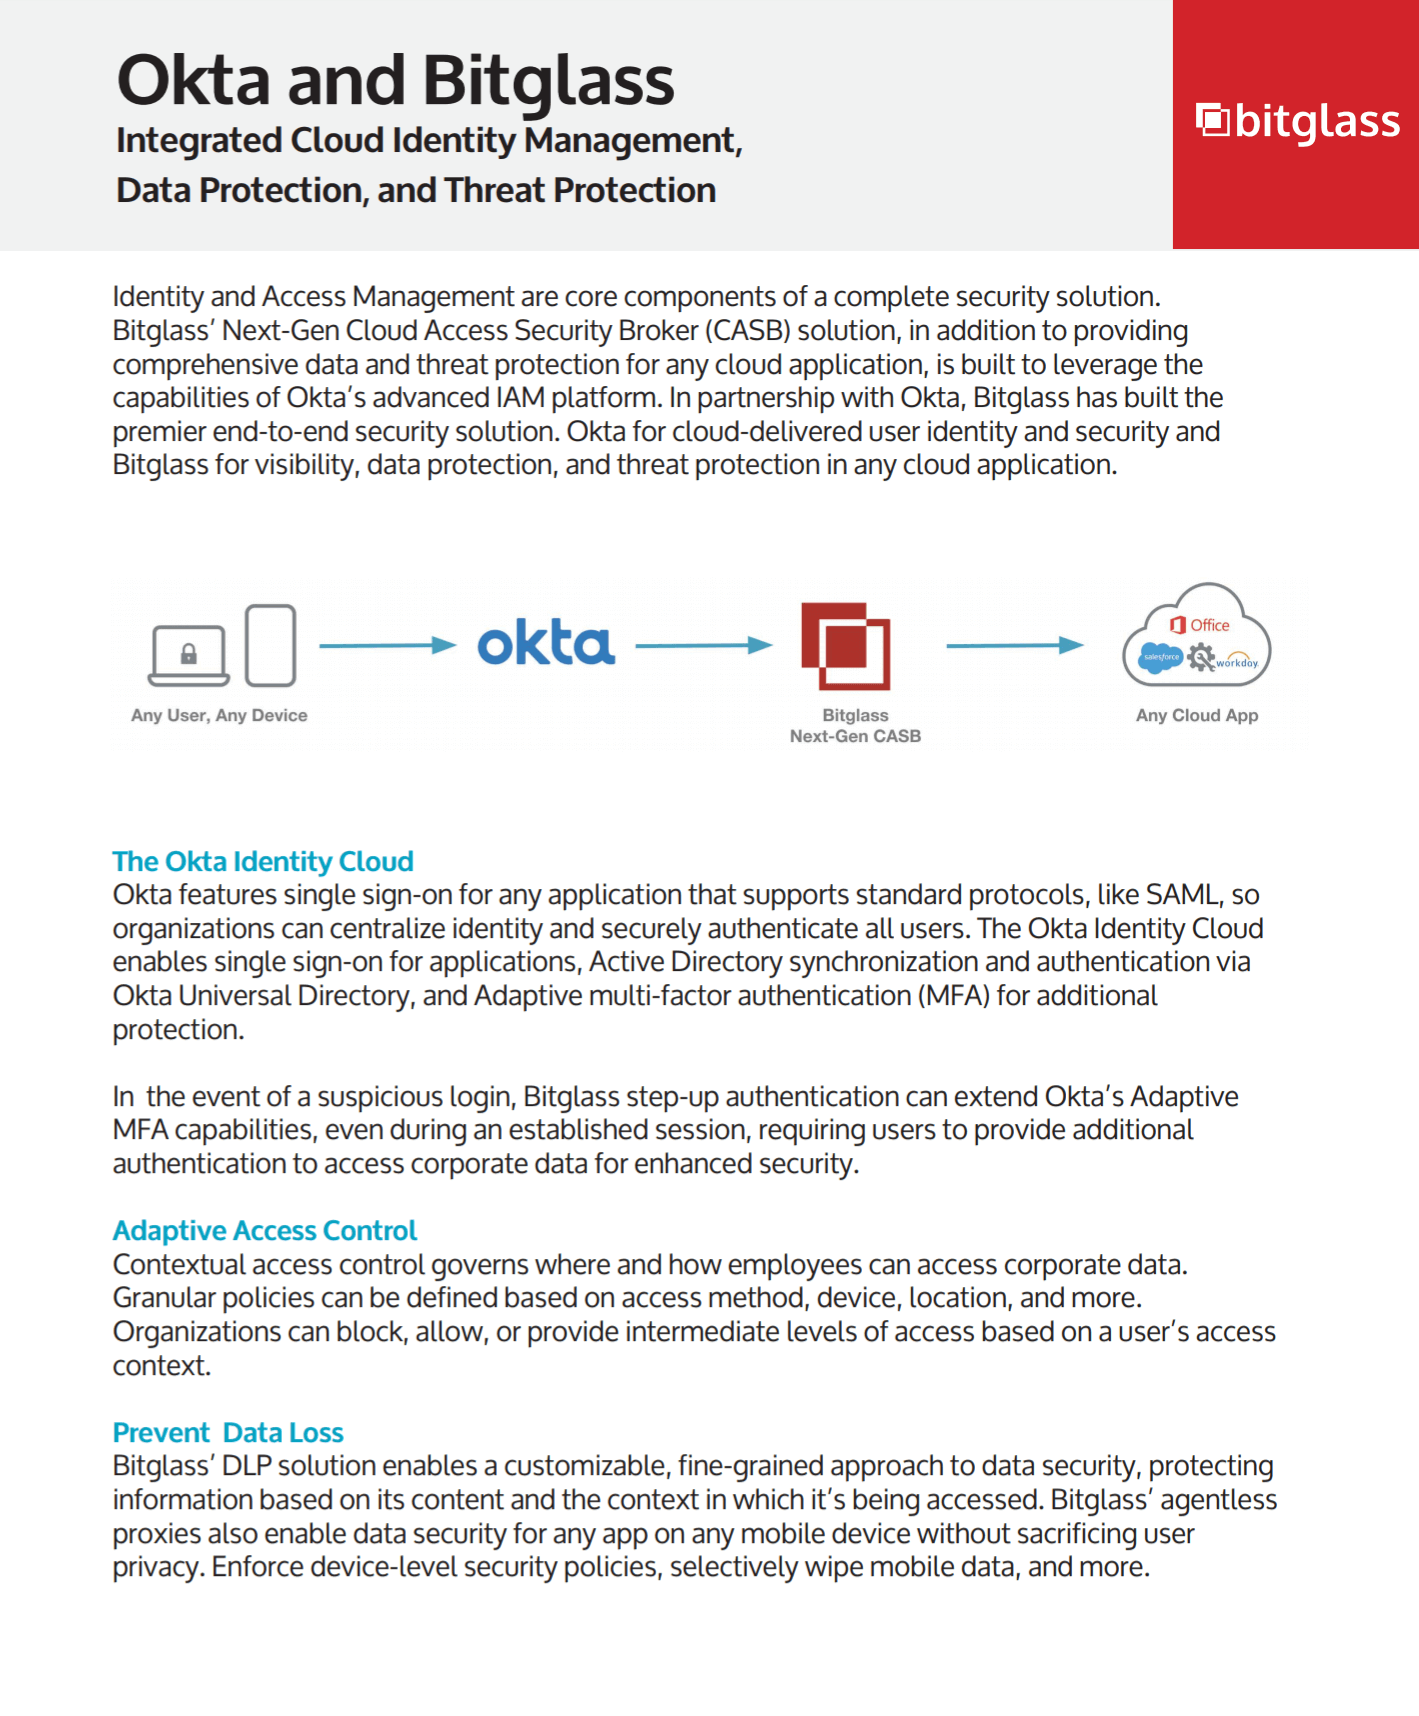 Okta and Bitglass Identity Management and Data and Threat Protection.